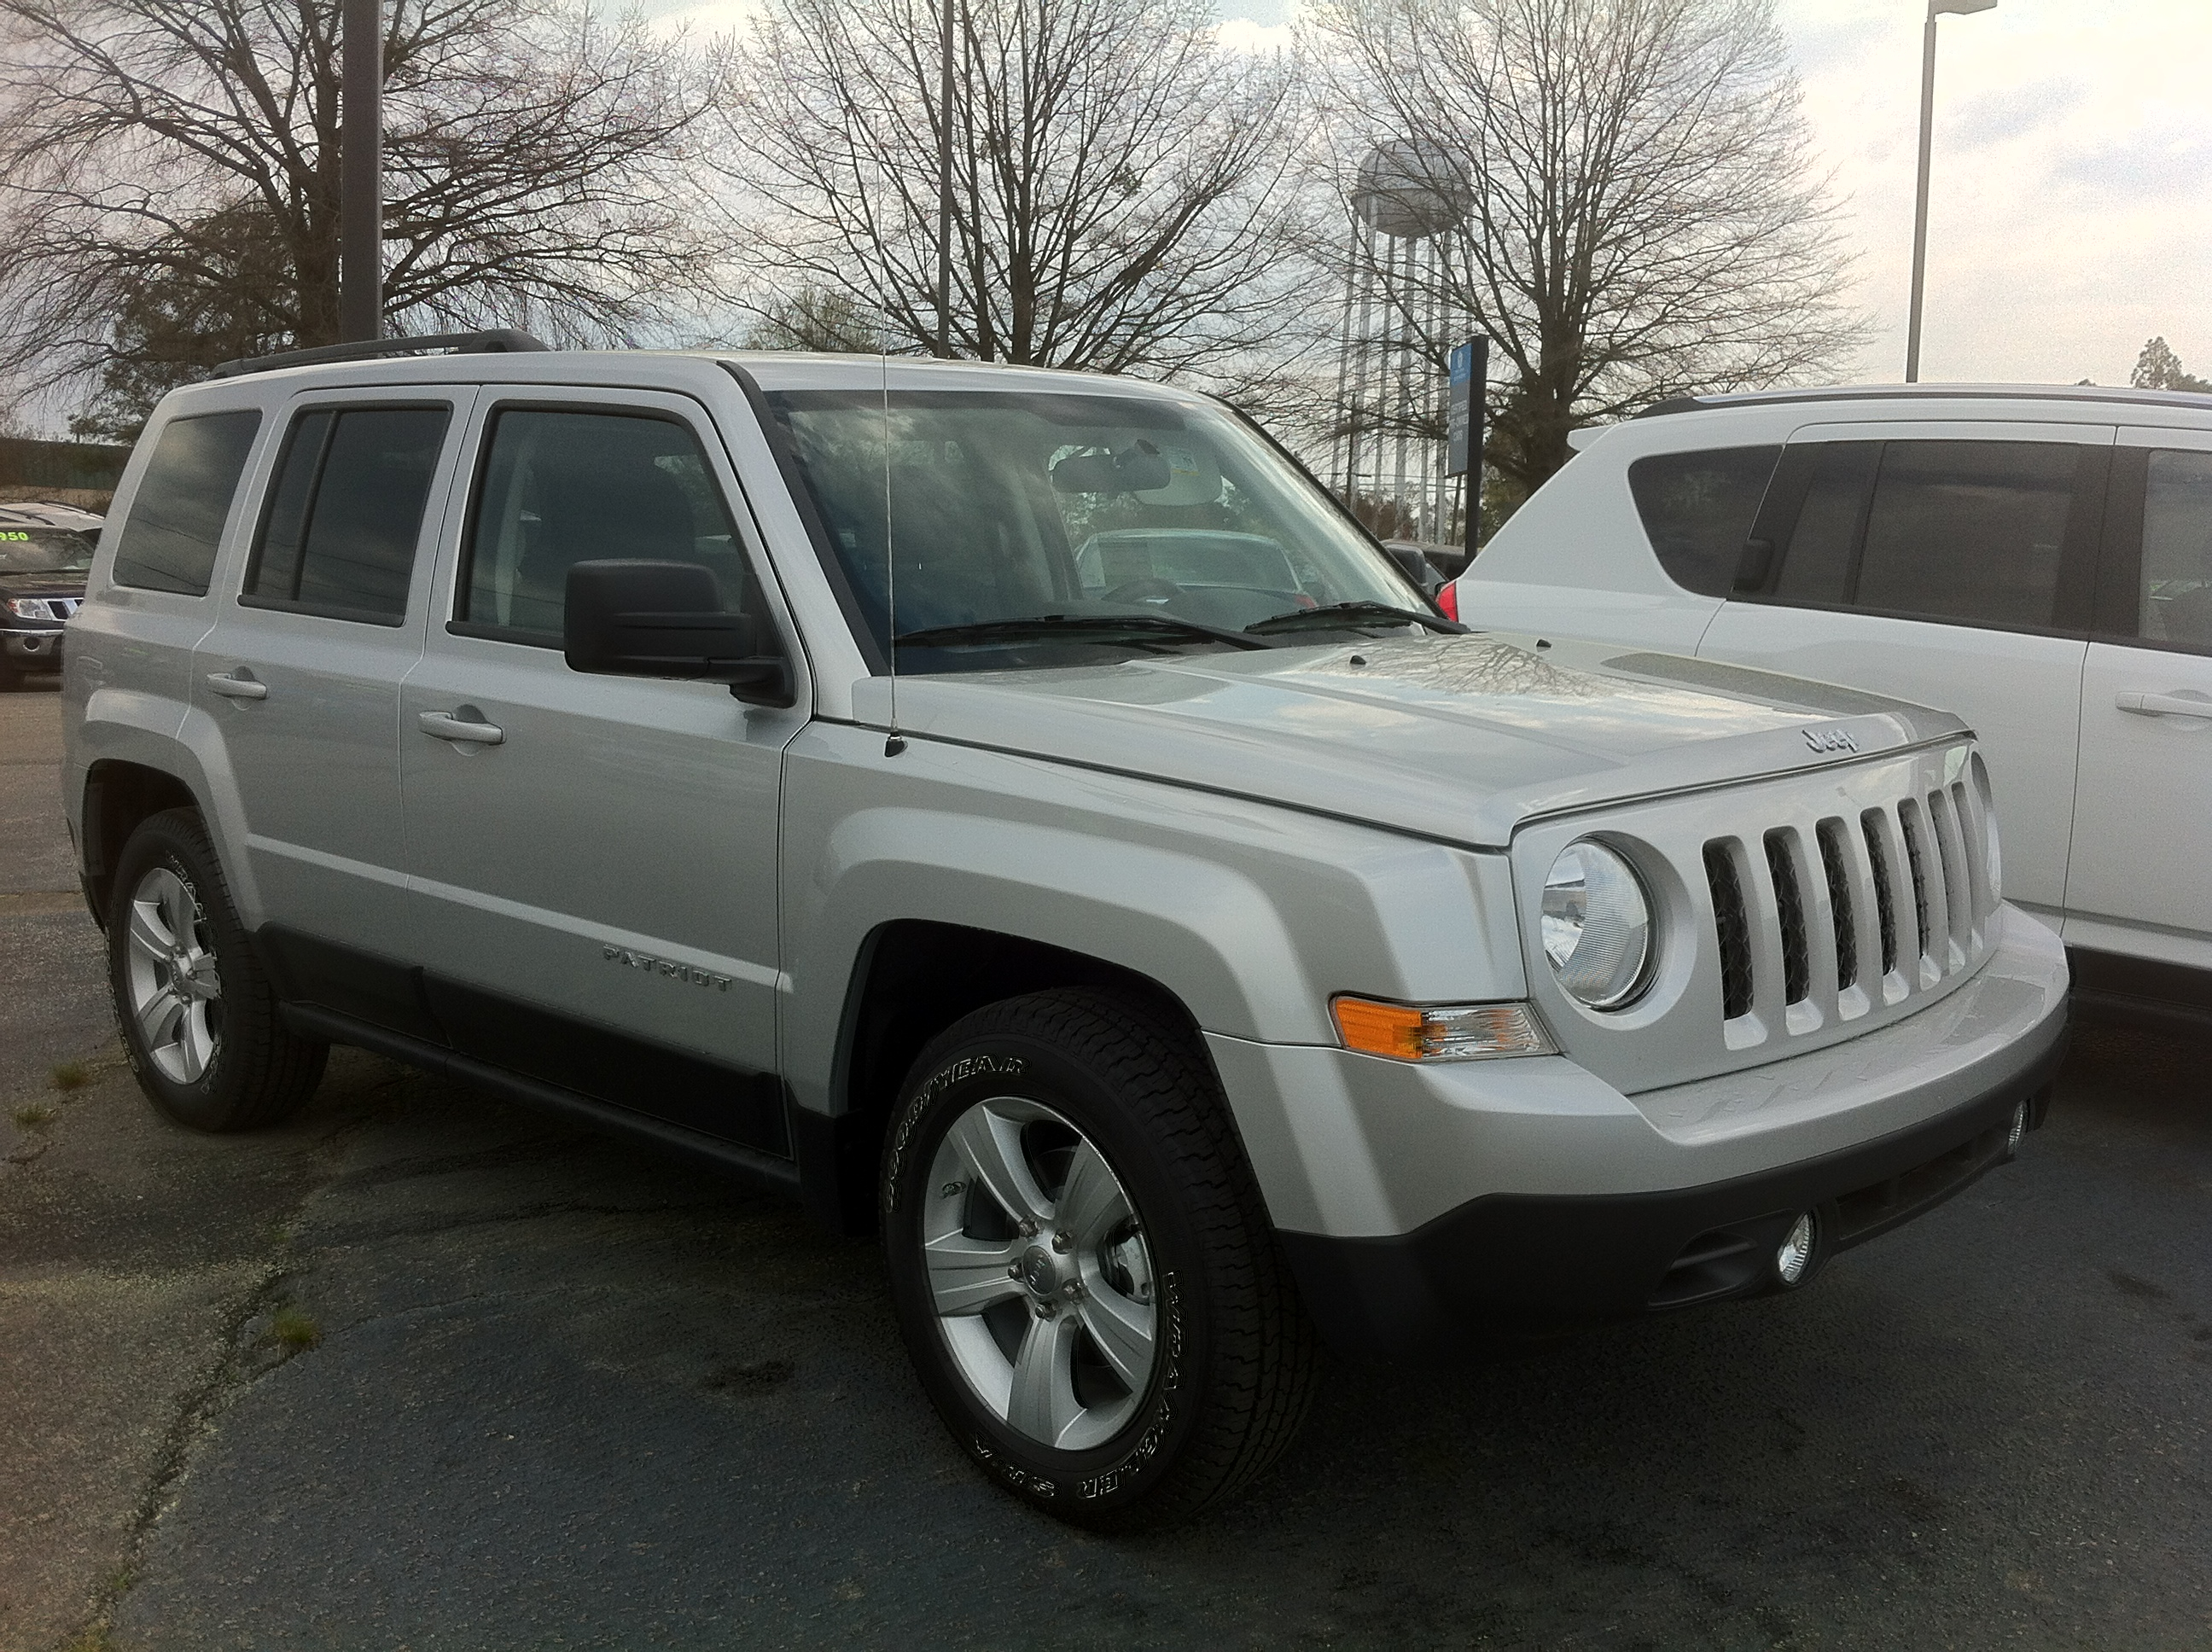 file:2012 jeep patriot - silver suv in aberdeen nc - wikimedia